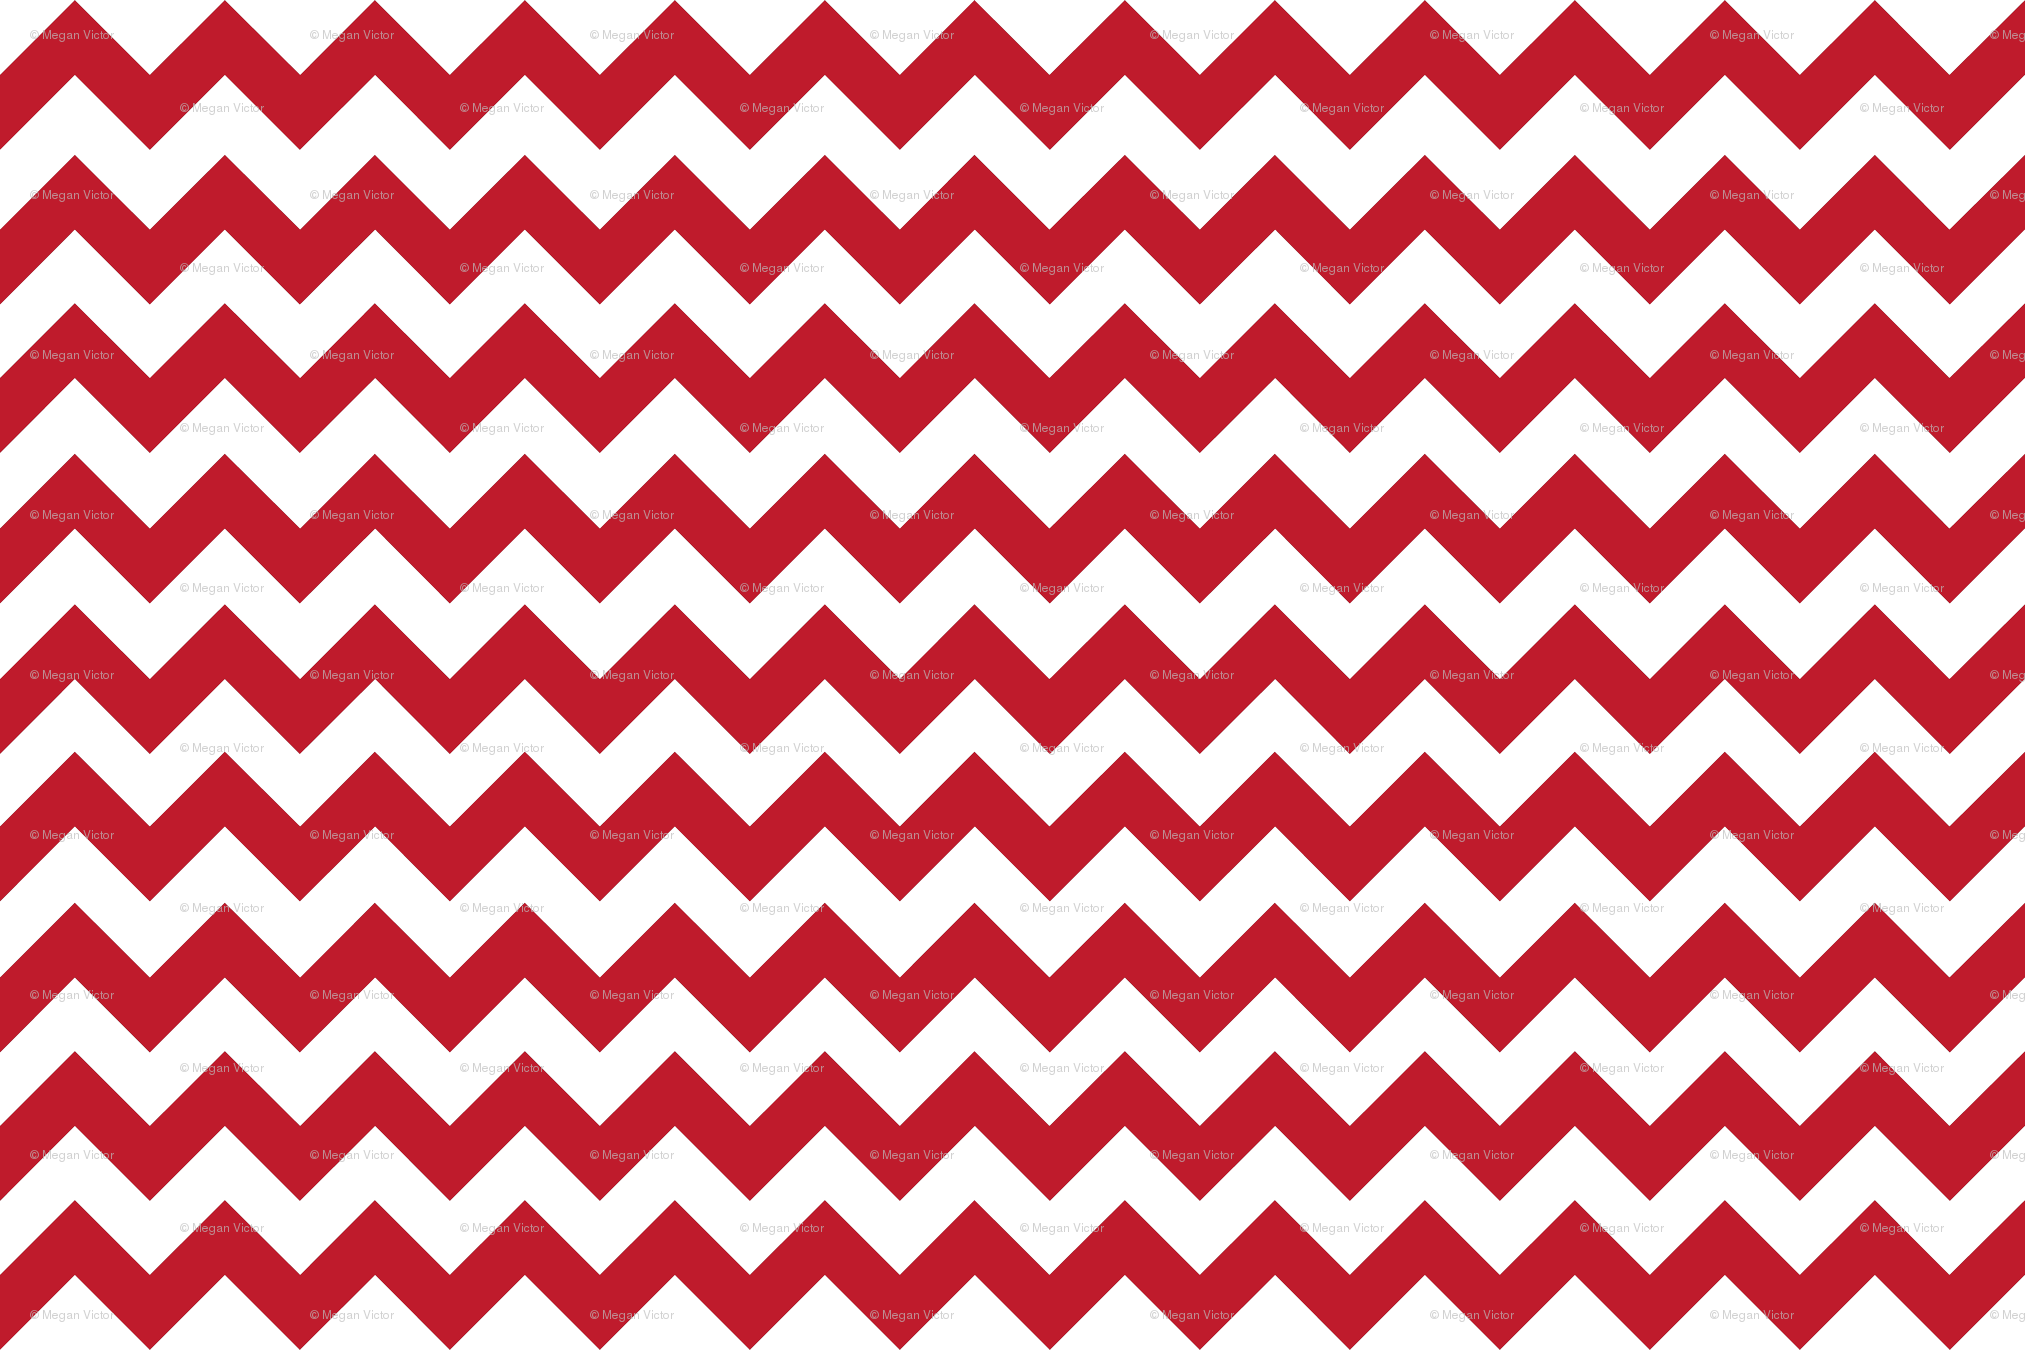 Download Red And Black Chevron Wallpaper Gallery